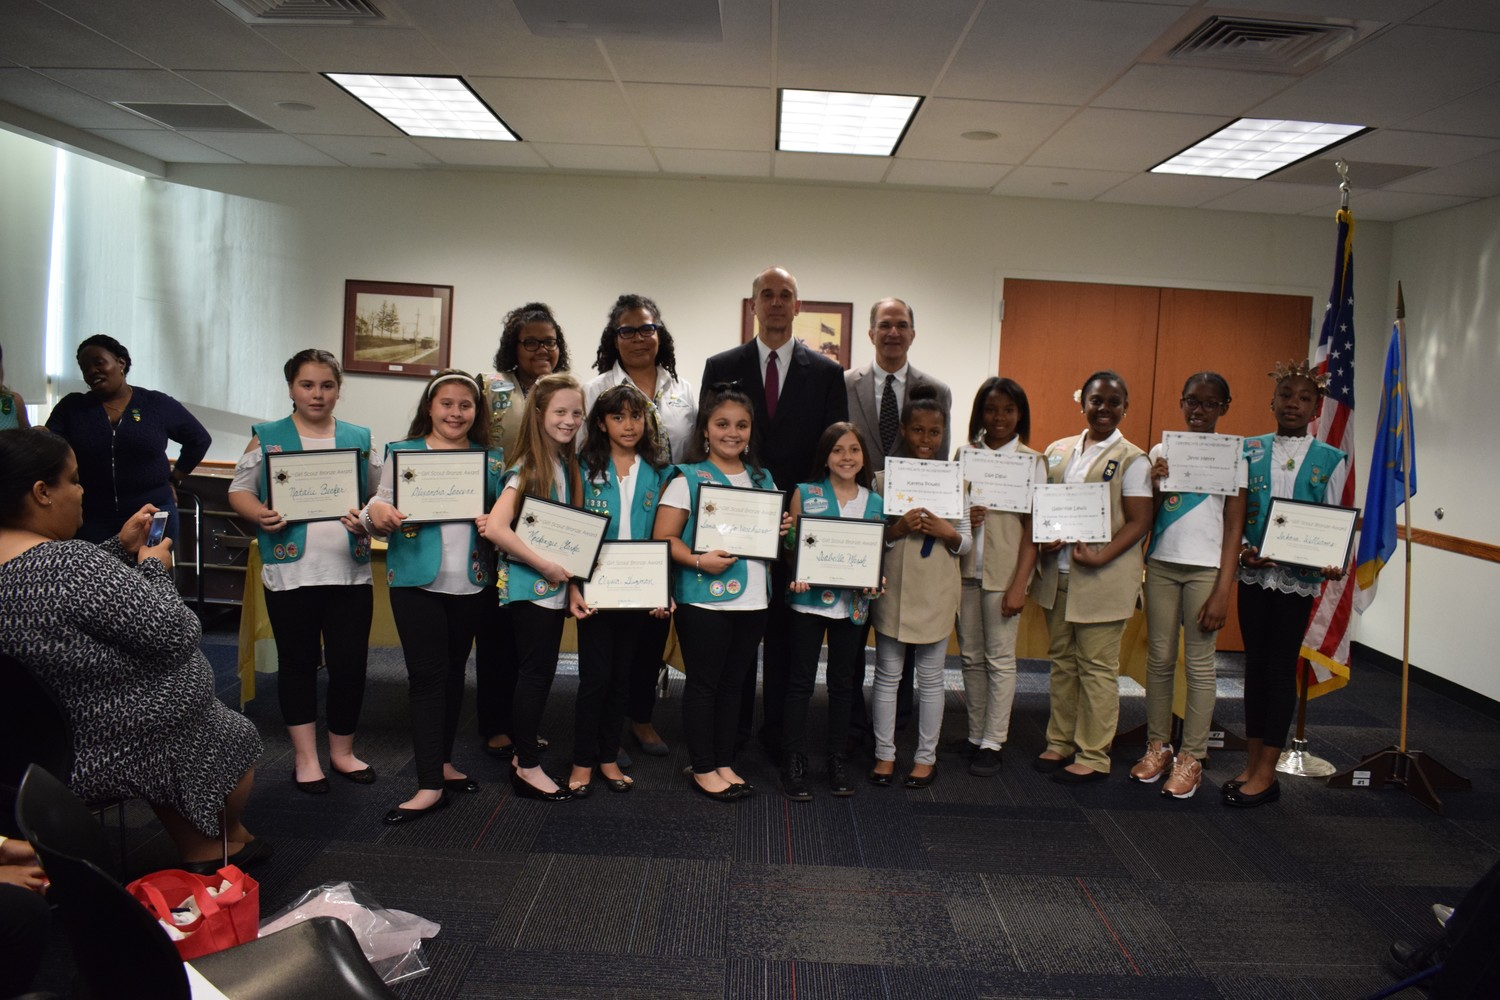 Girl Scouts from Troops 1308, 1335 and 1092 were recognized for their community service during the annual Awards Ceremony. Troop leaders and local officials presented awards and certificates to the scouts.